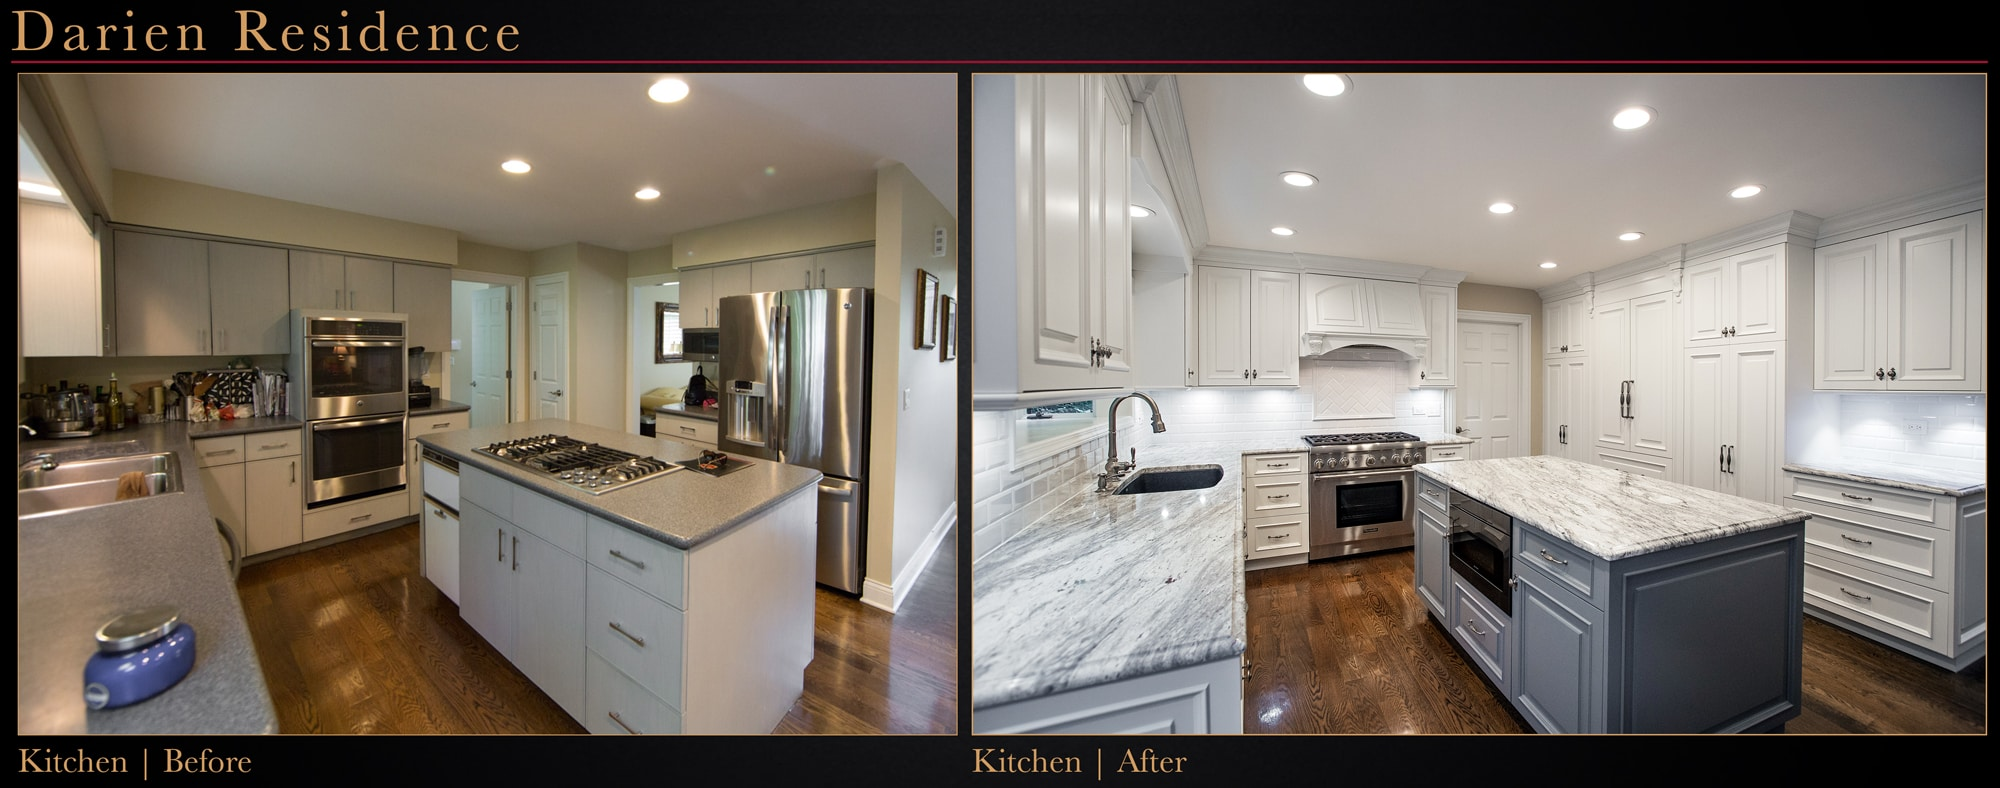 Custom-Transitional-Kitchen-Remodeling-Before-&-After